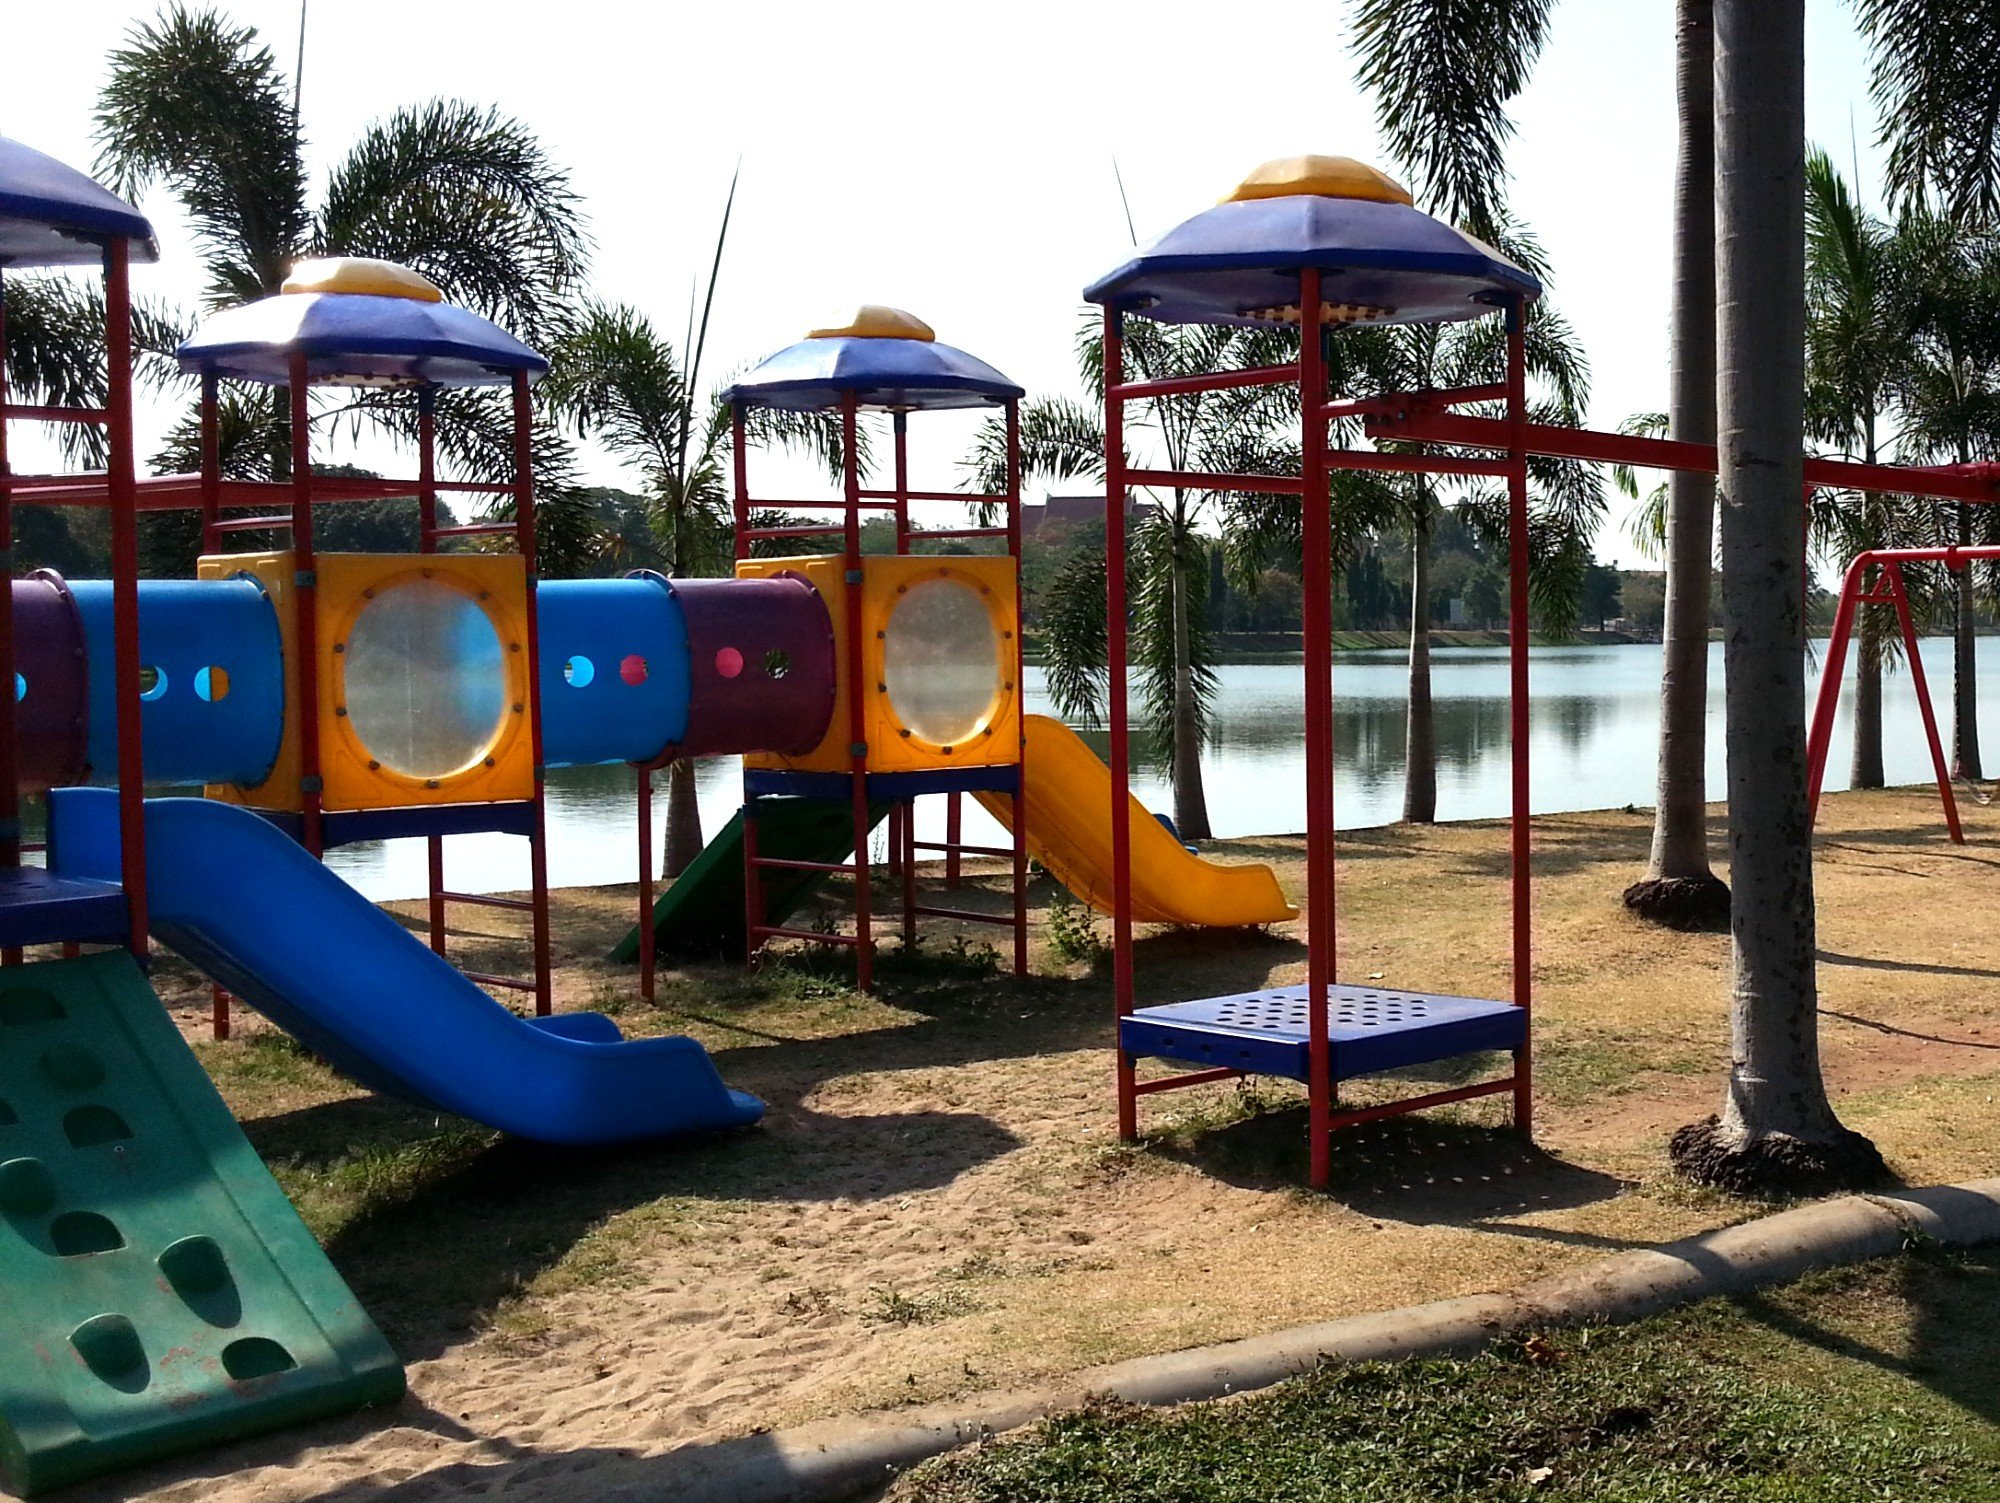 'sanam dek len' is the Thai word for playground